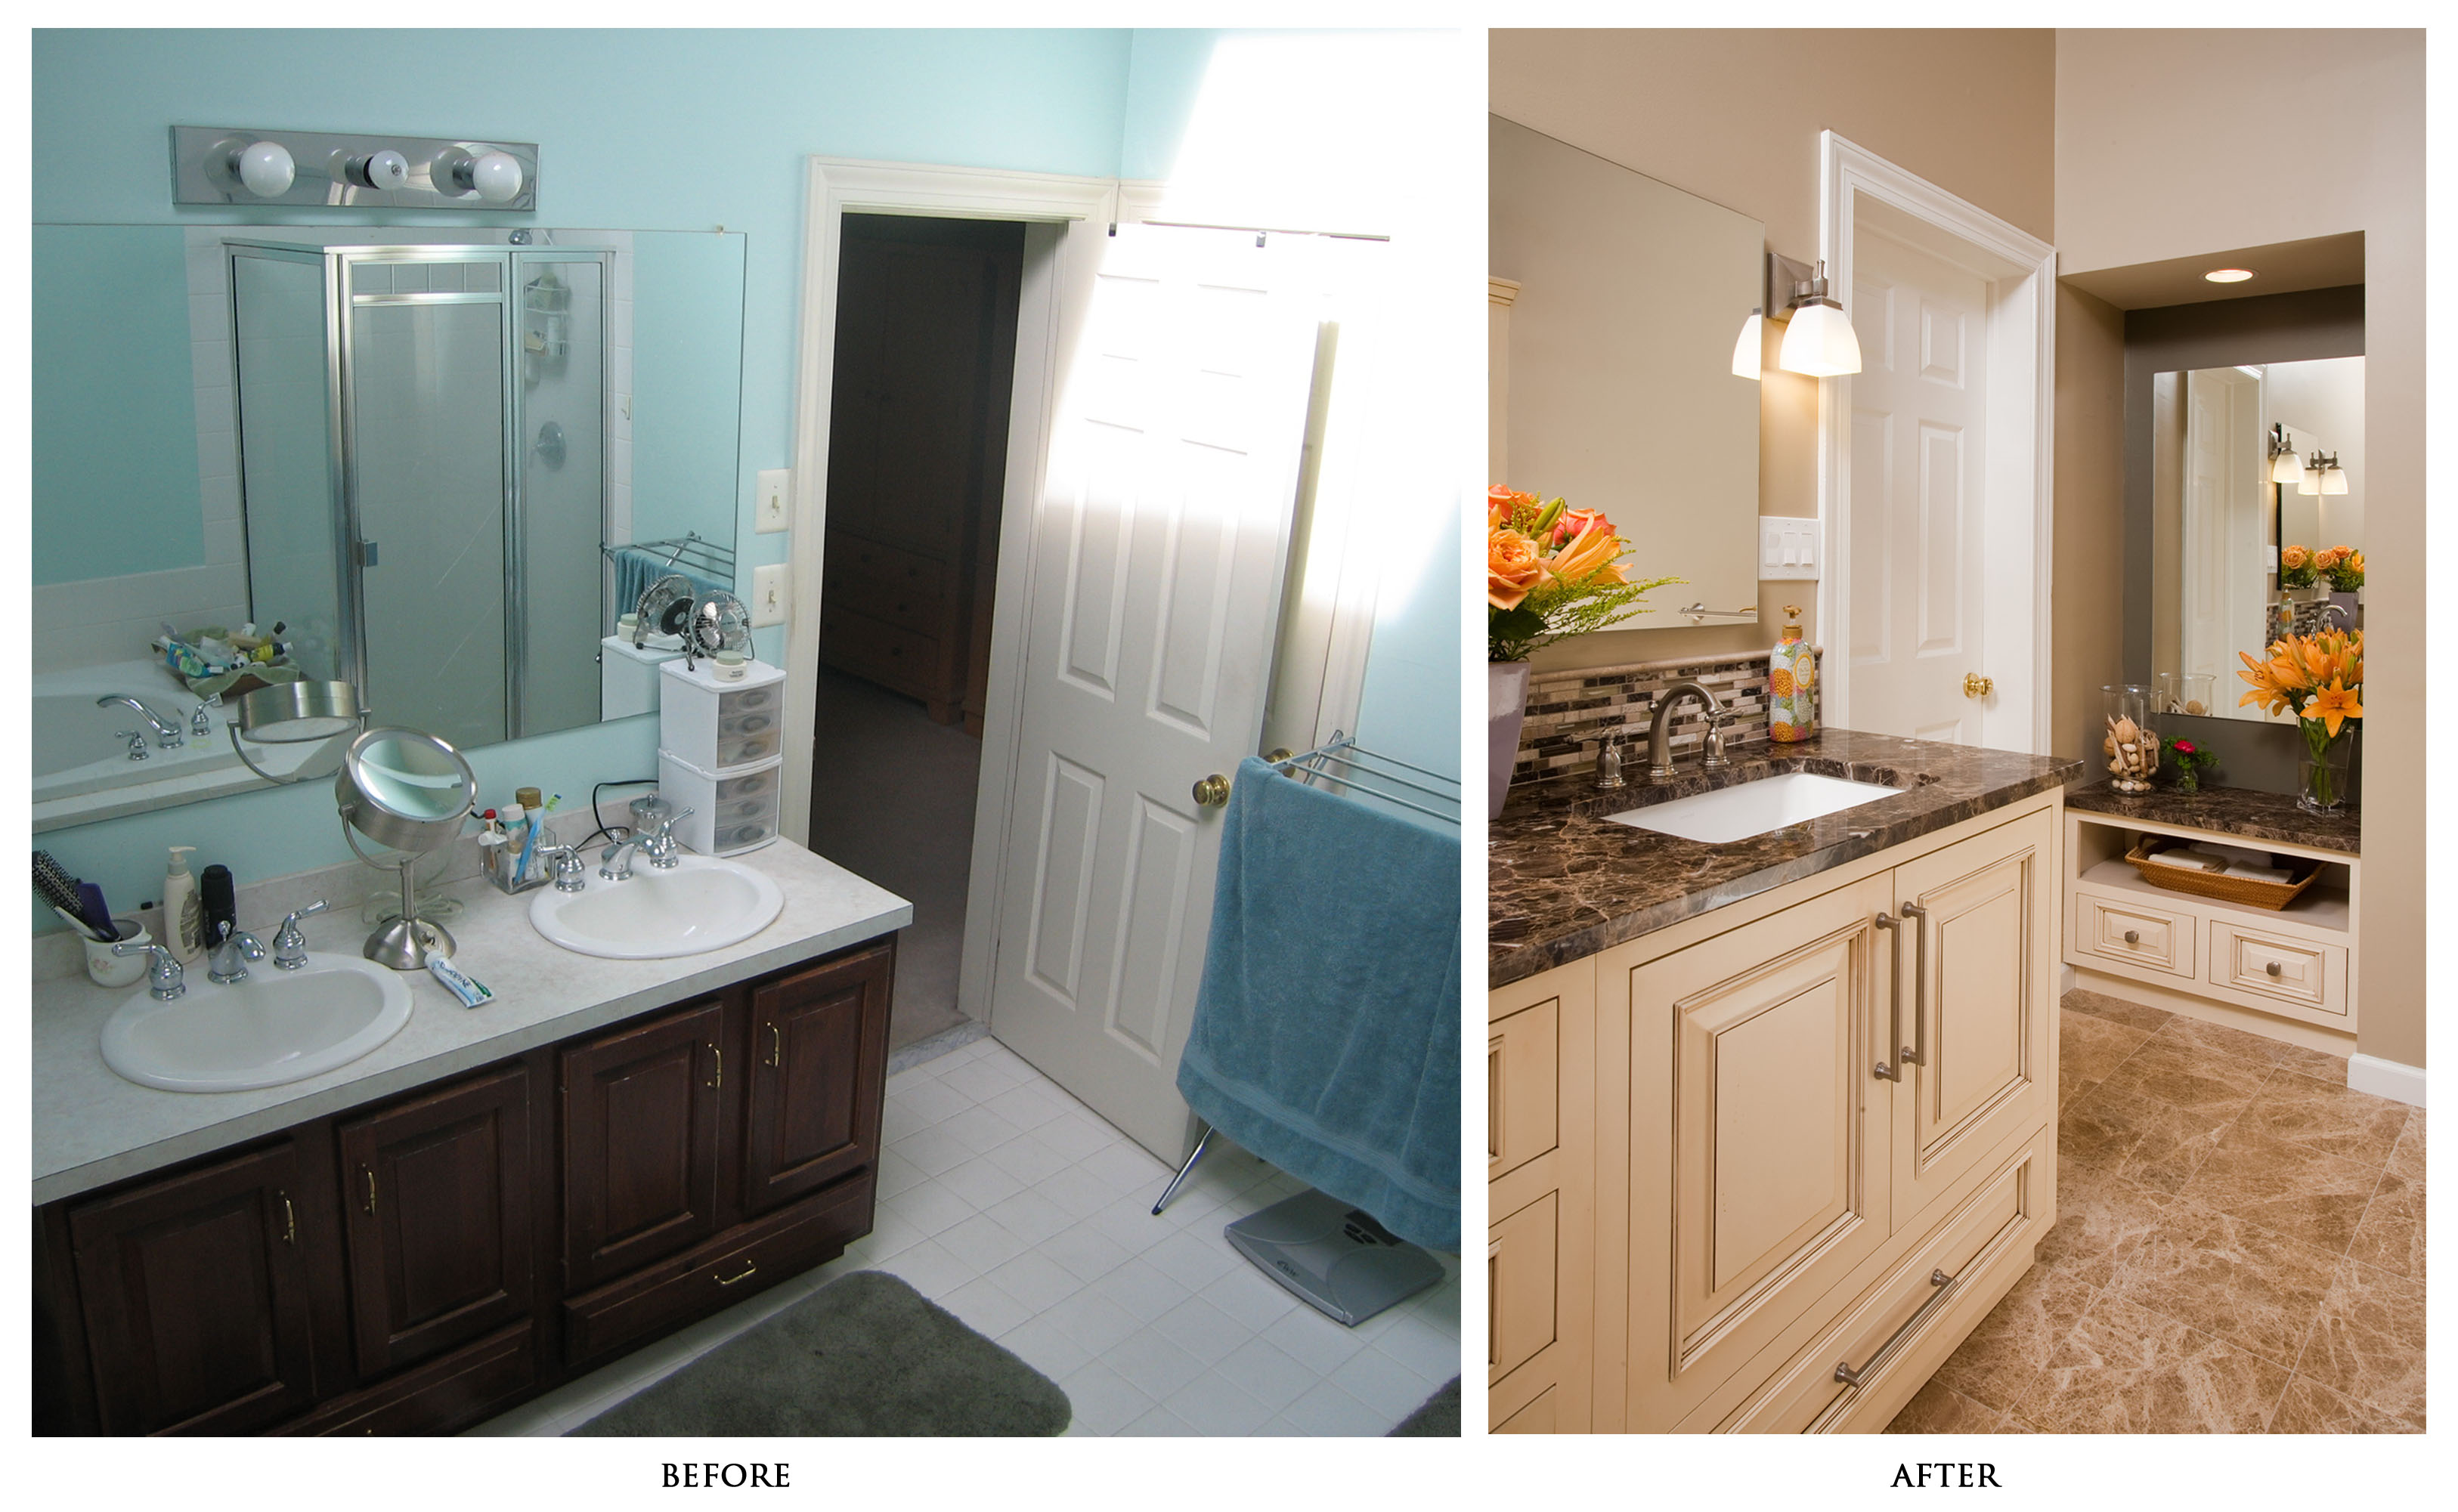 Beforeandafterdiybathroomrenovationideasmarvelousdiy - Bathroom remodel before and after pics